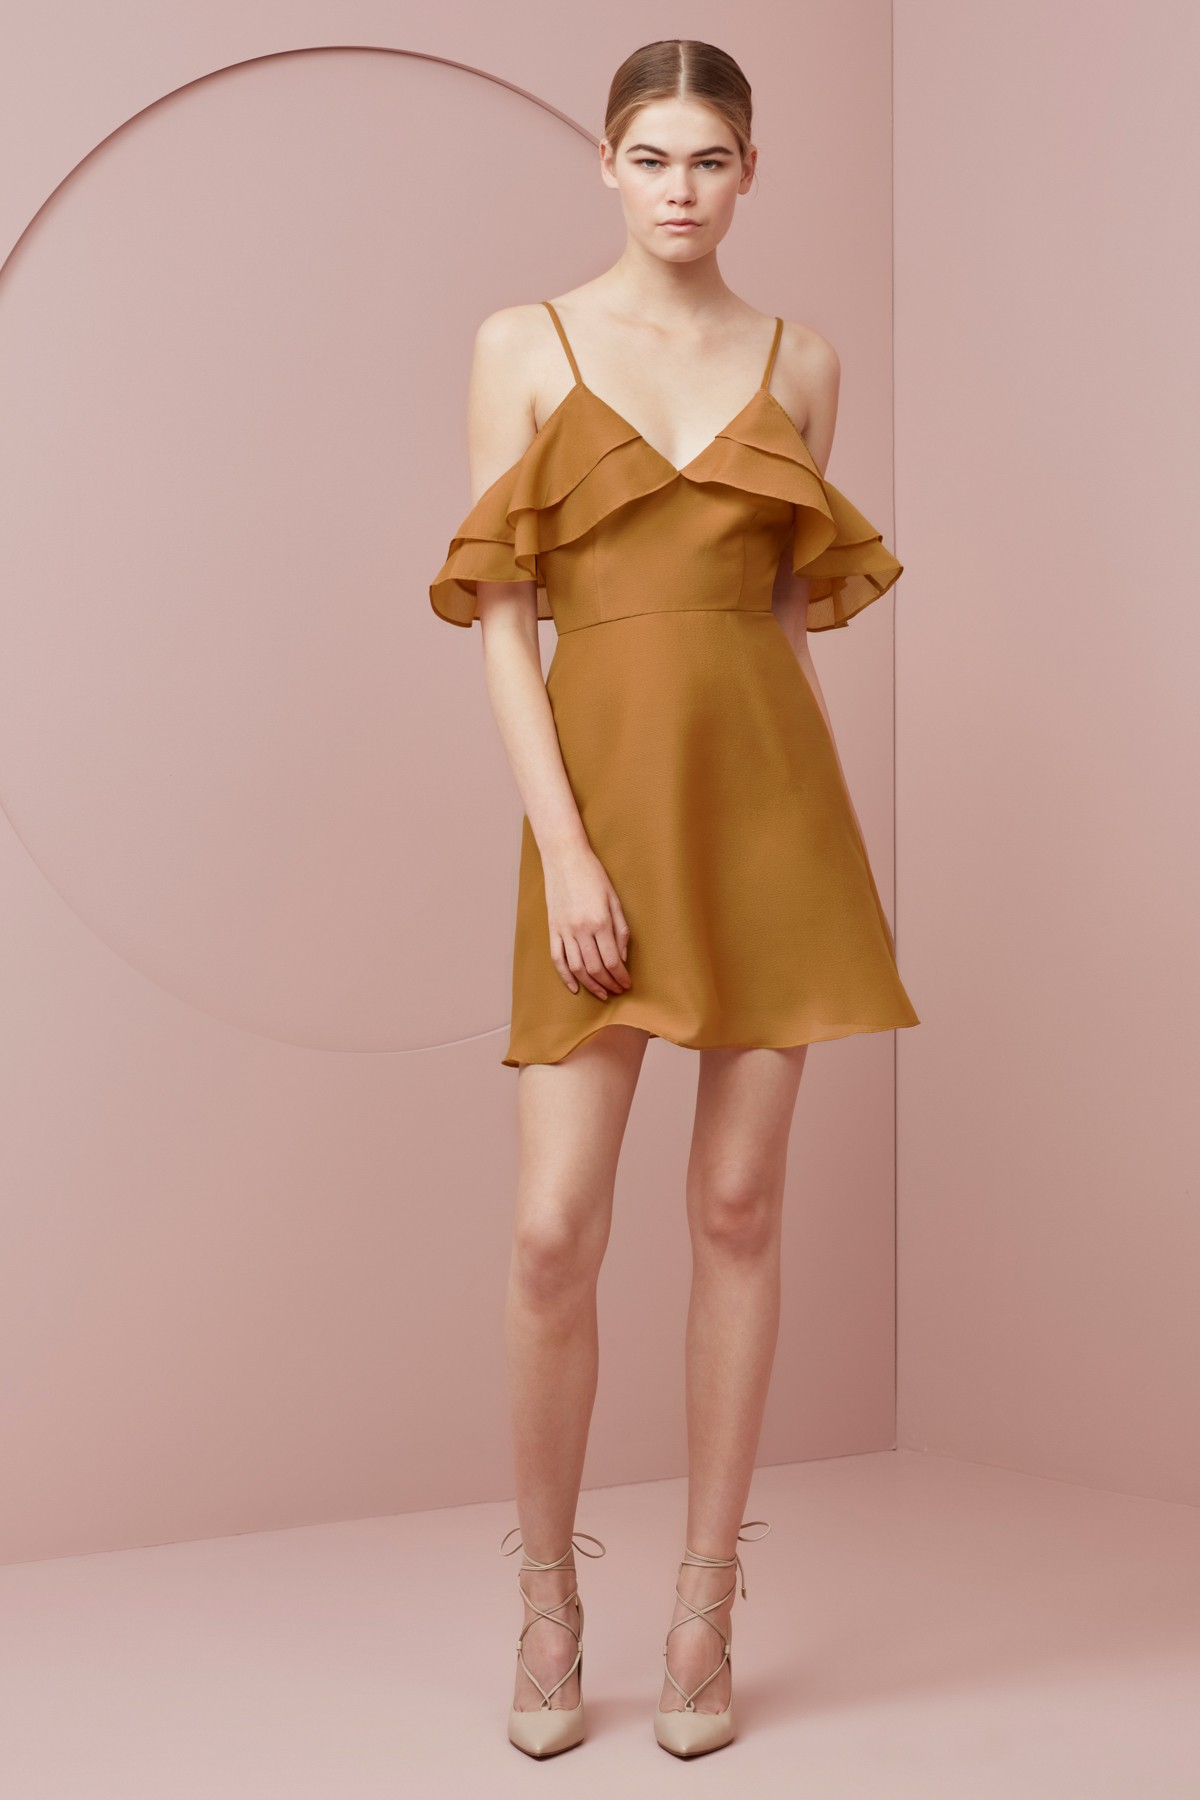 1701_ks_lostloverminidress_mustard_g-edit.jpg